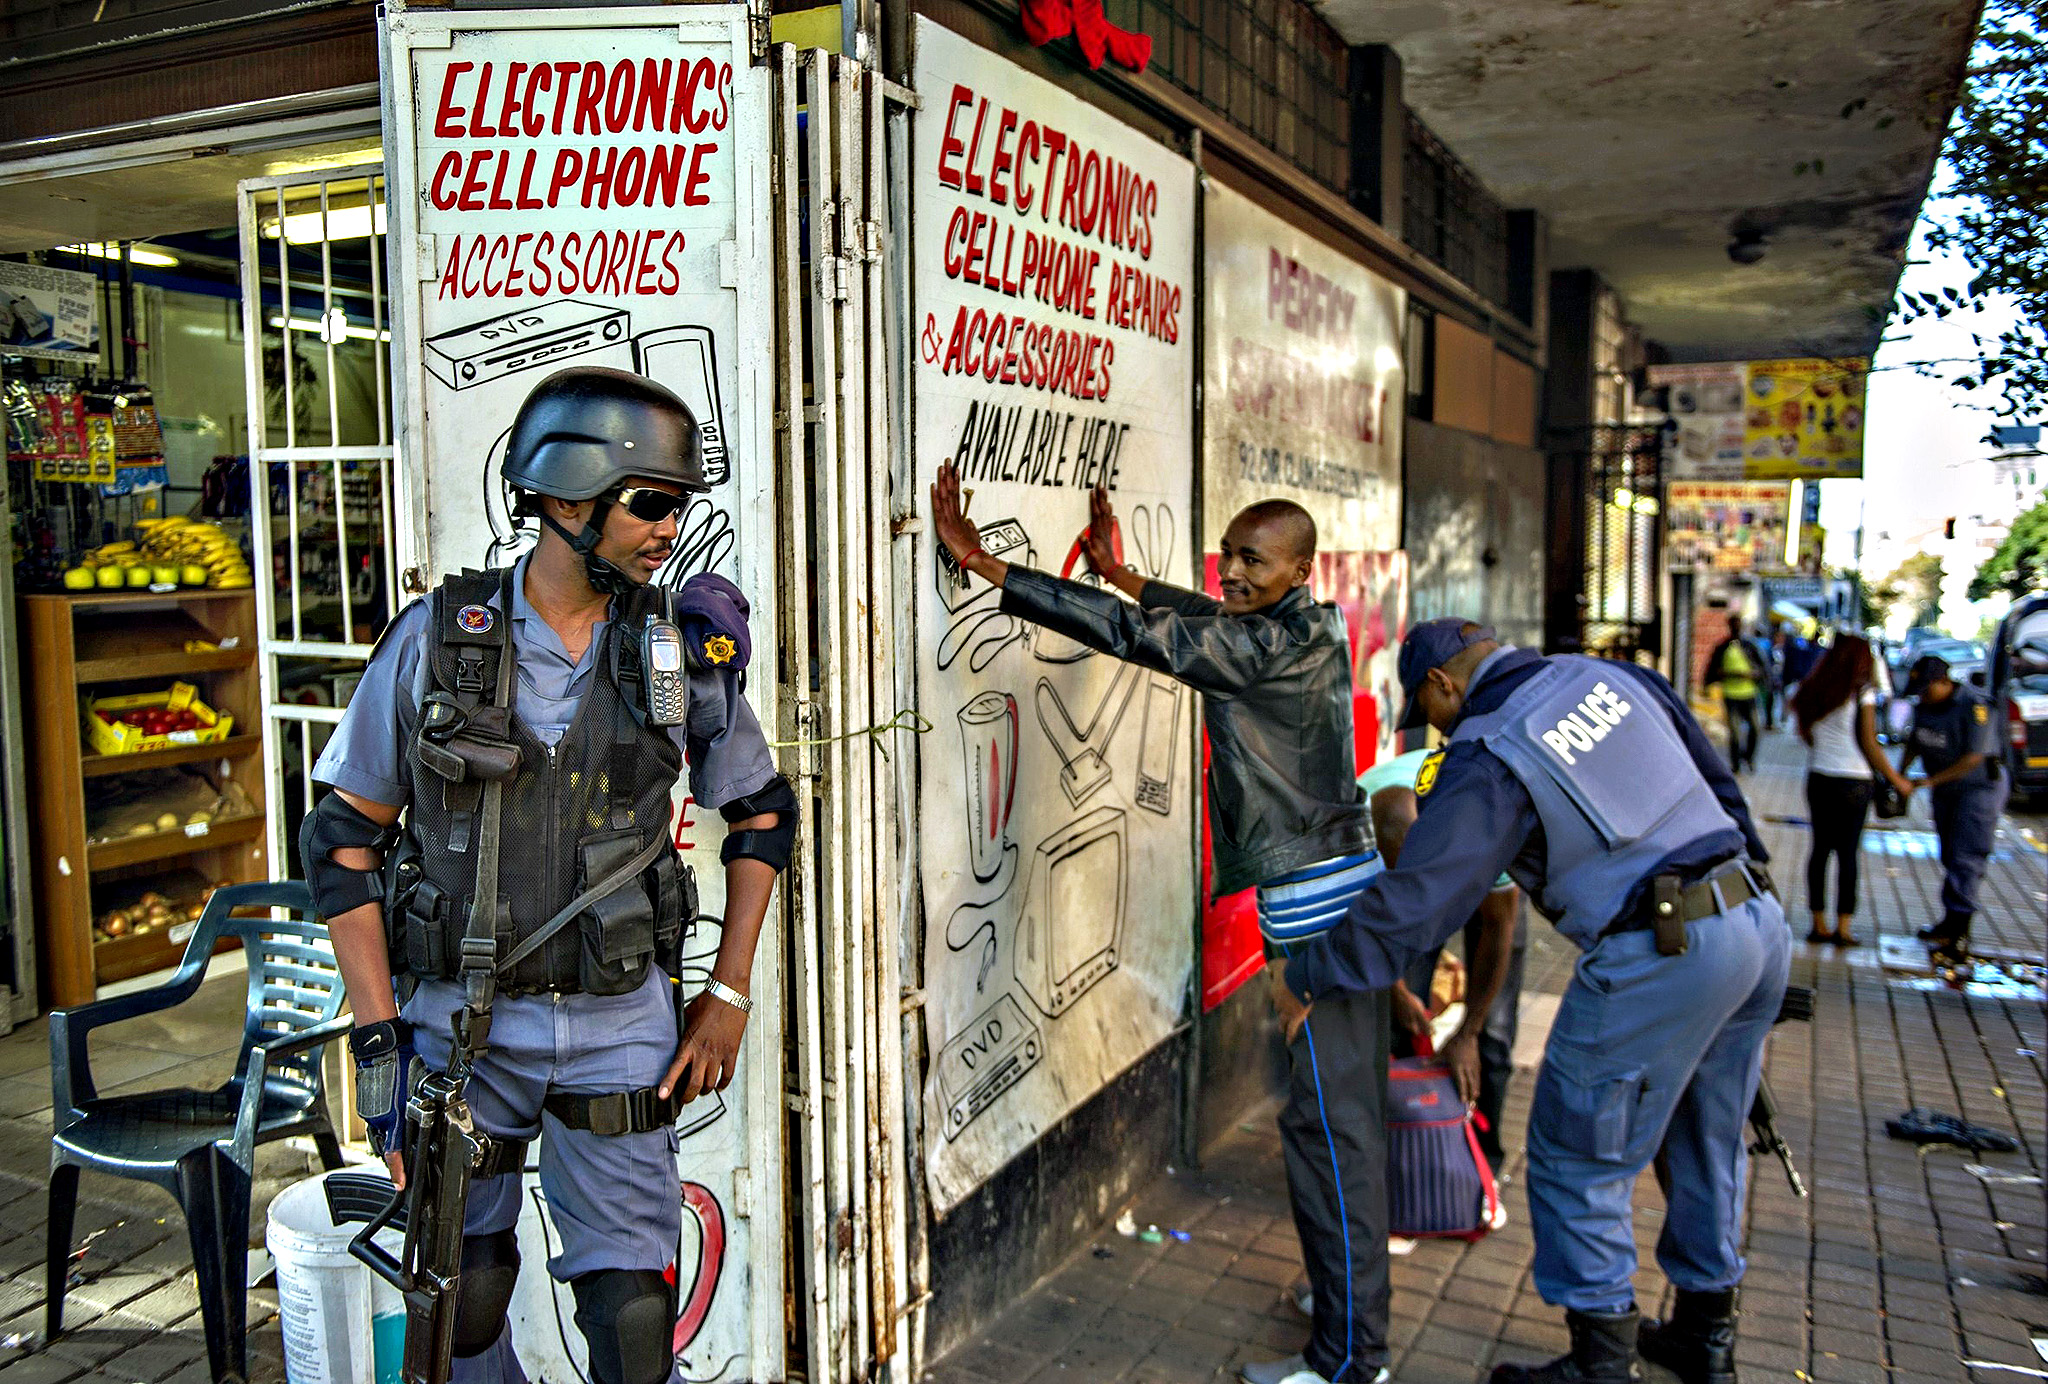 A police officer searches a man as South African Police officers backed by soldiers of the South African Defence Force SADF conduct searches and identity checks in Hilbrow Johannesburg, an area mostly inhabited by foreign nationals, on Monday. At least seven people have been killed in three weeks of unrest that have revived memories of xenophobic bloodshed in 2008, when 62 people were killed mainly in Johannesburg's townships